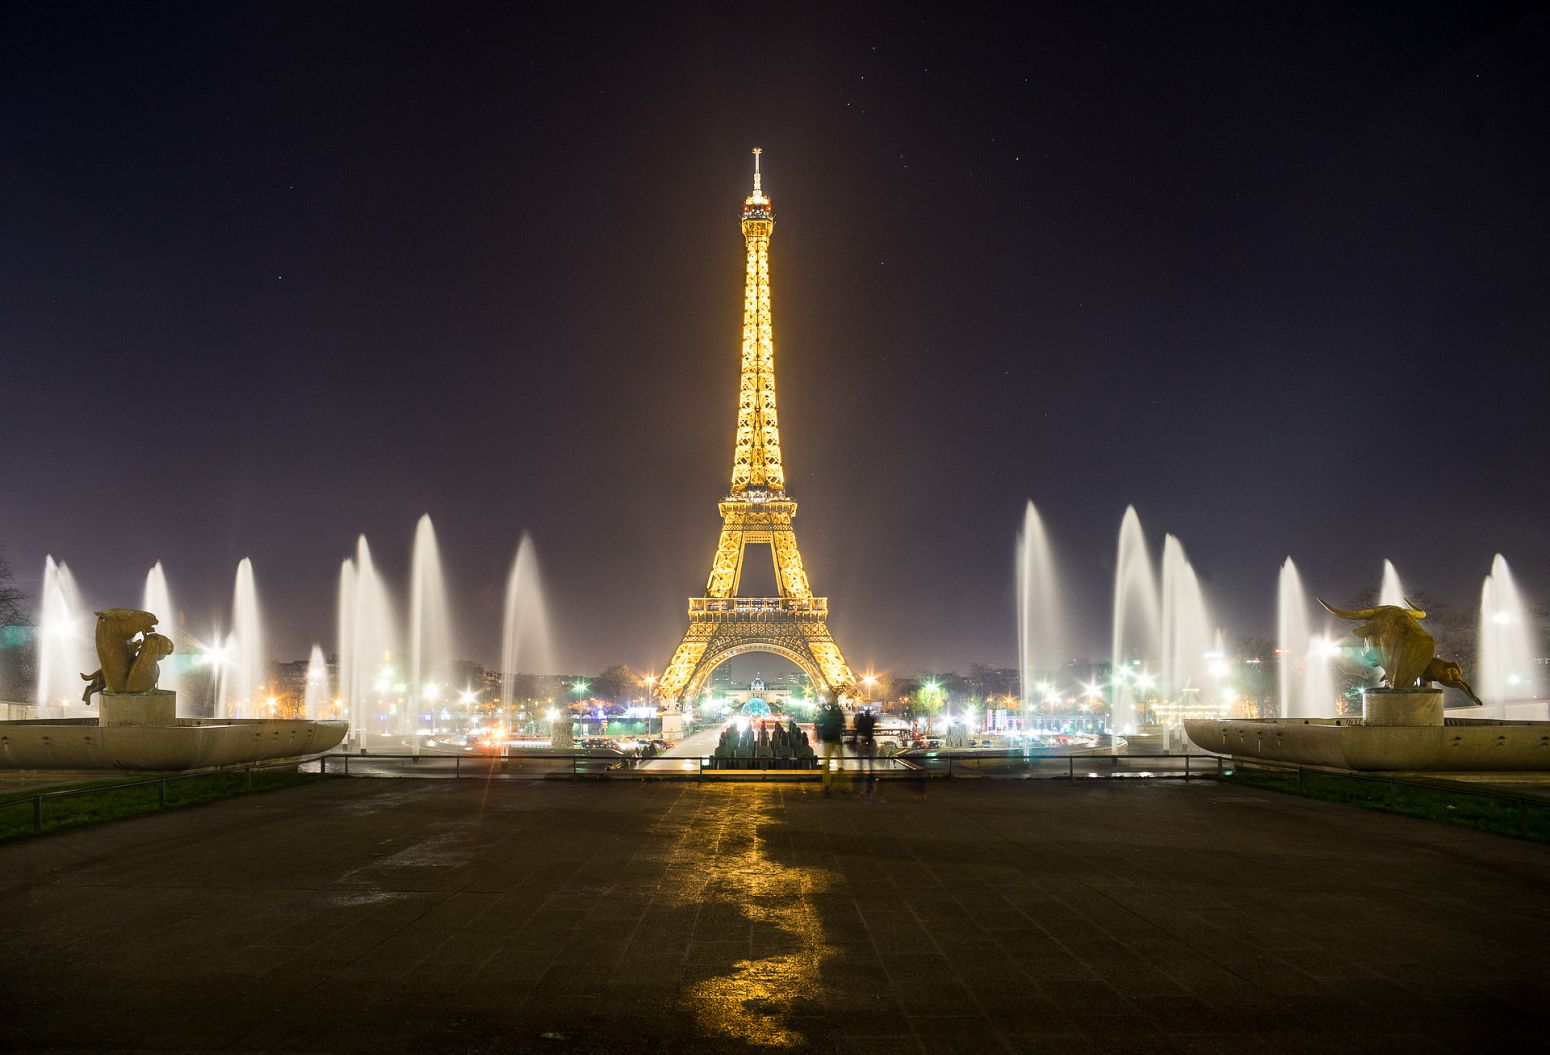 The Tour Eiffel from the Trocadero, Paris, France